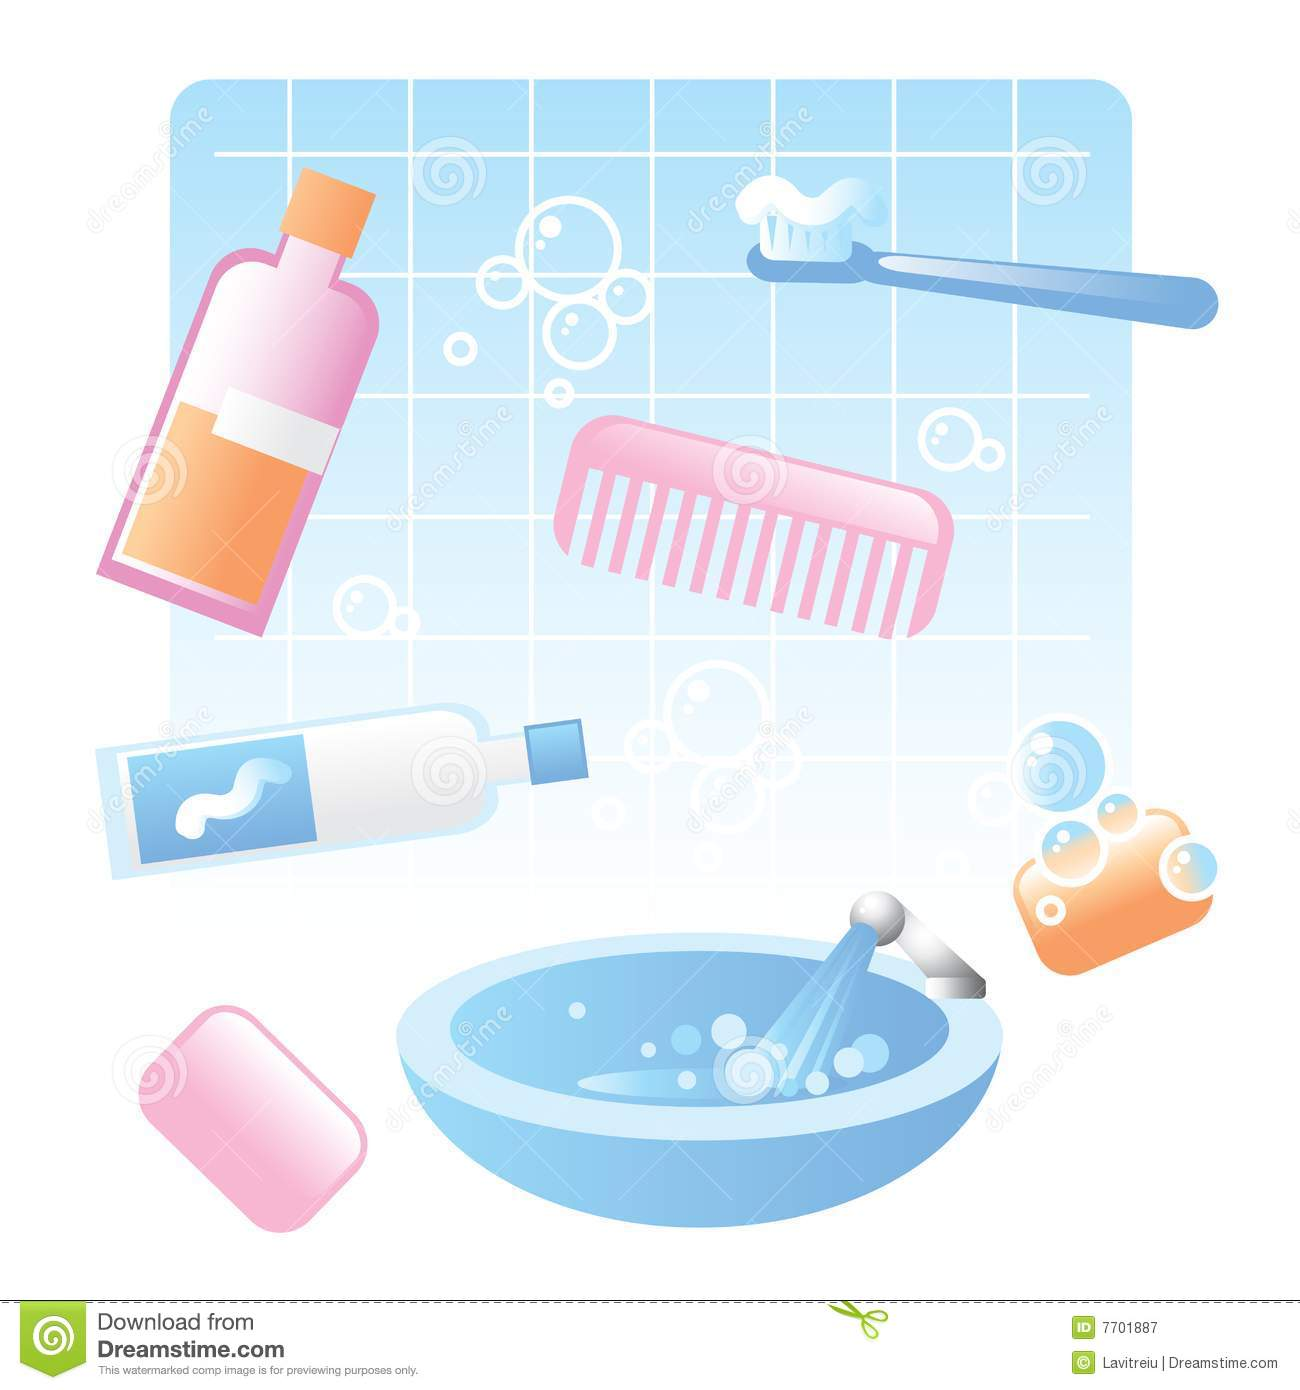 Cute bathroom items royalty free stock photography image for Items for bathroom